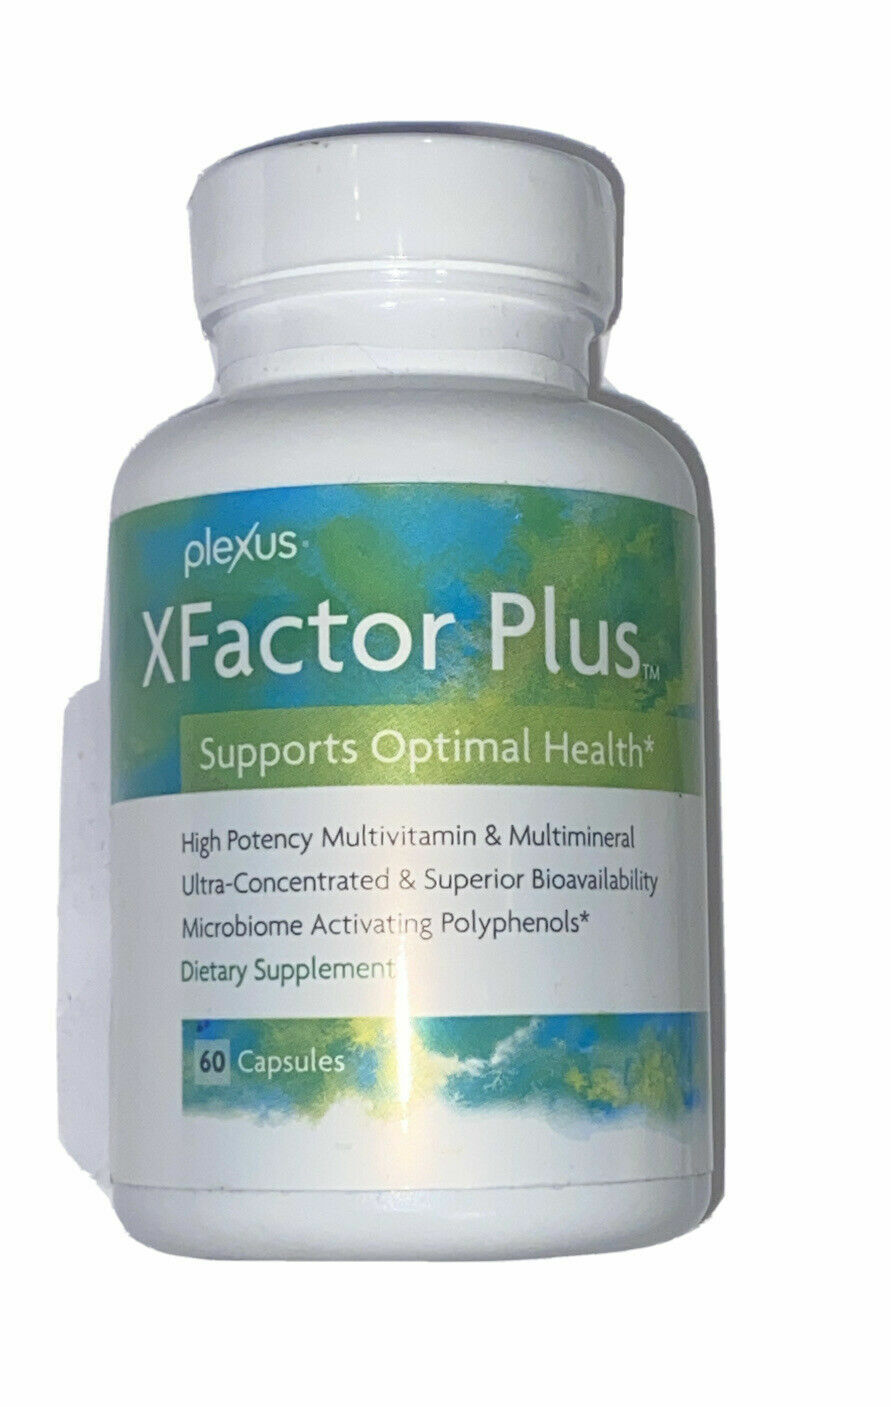 Plexus Slim XFactor Plus Multivitamin SEALED NEW  60 capsules - FREE SHIPPING